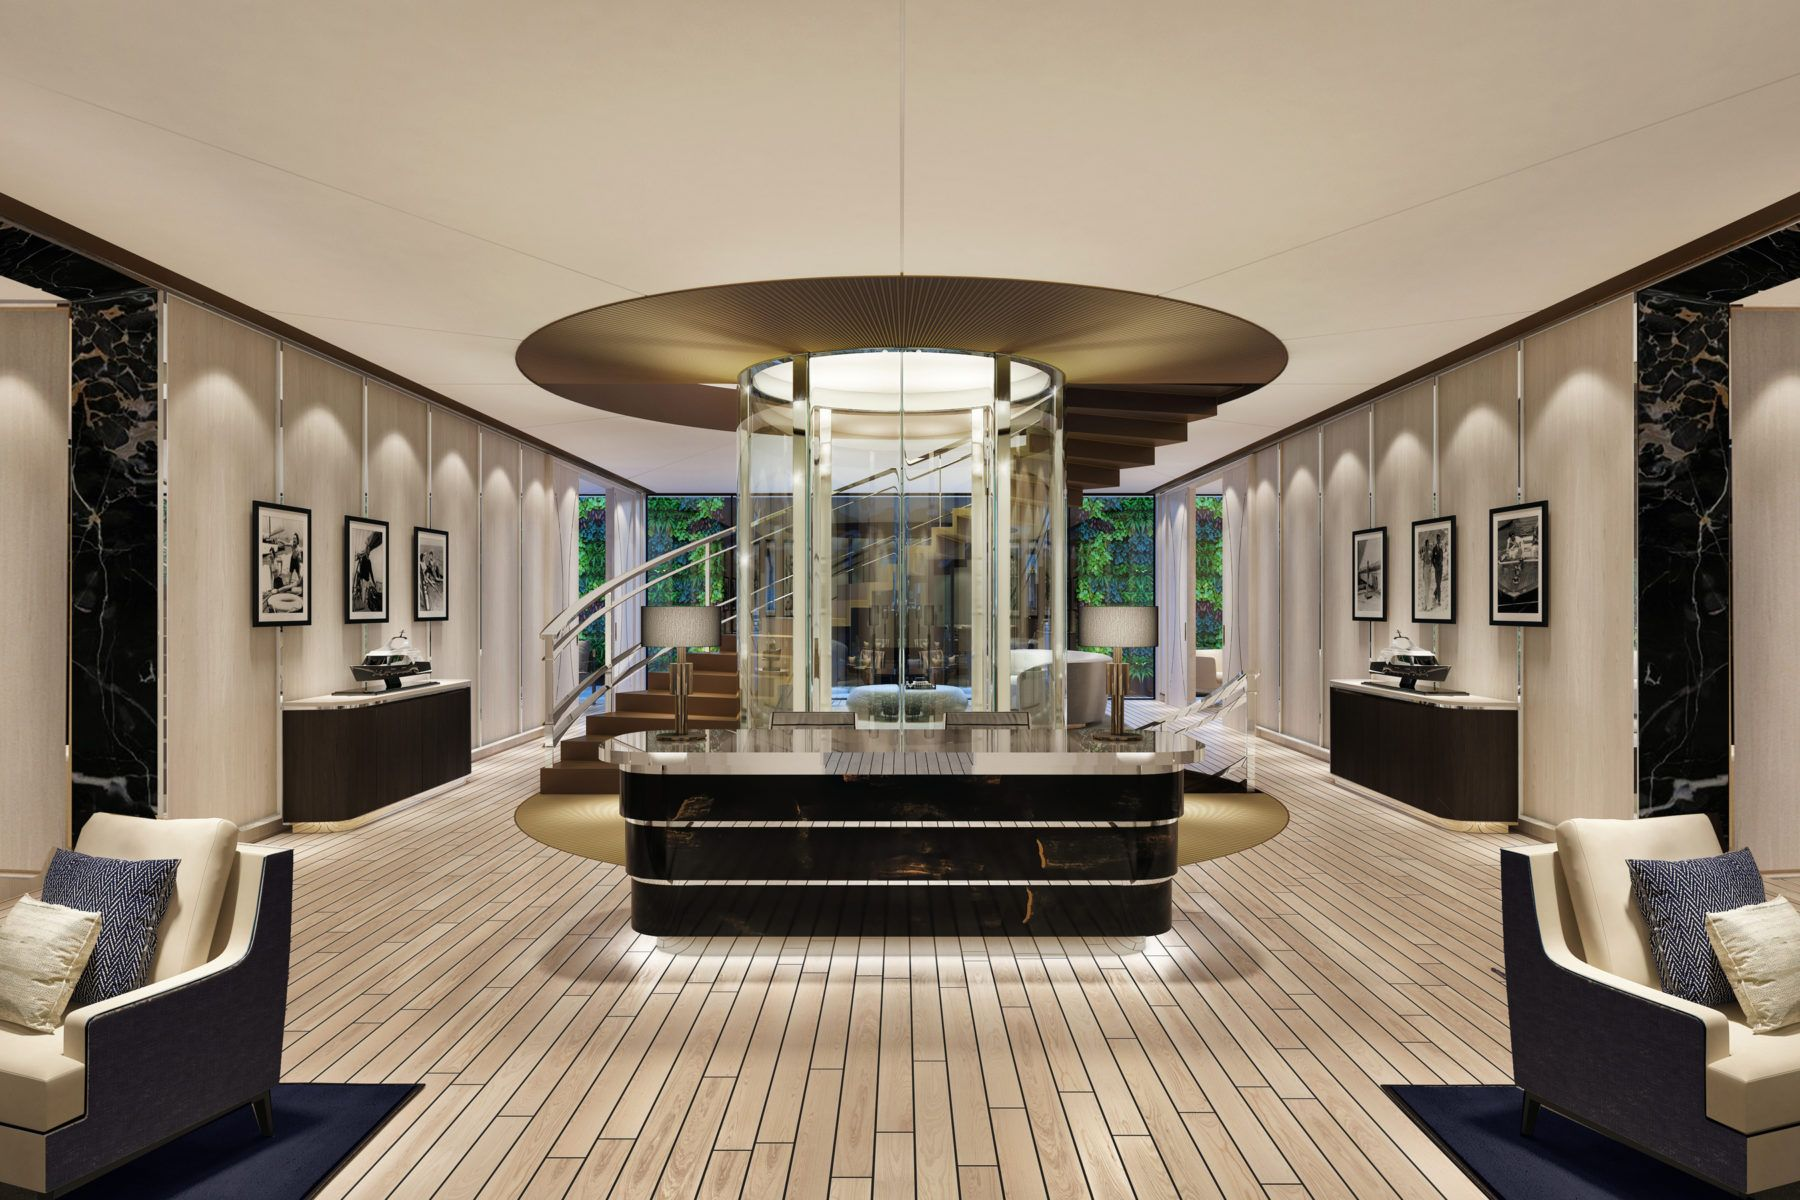 Yacht Club Concept March White London Interior Interior Design Business Interior Design Studio